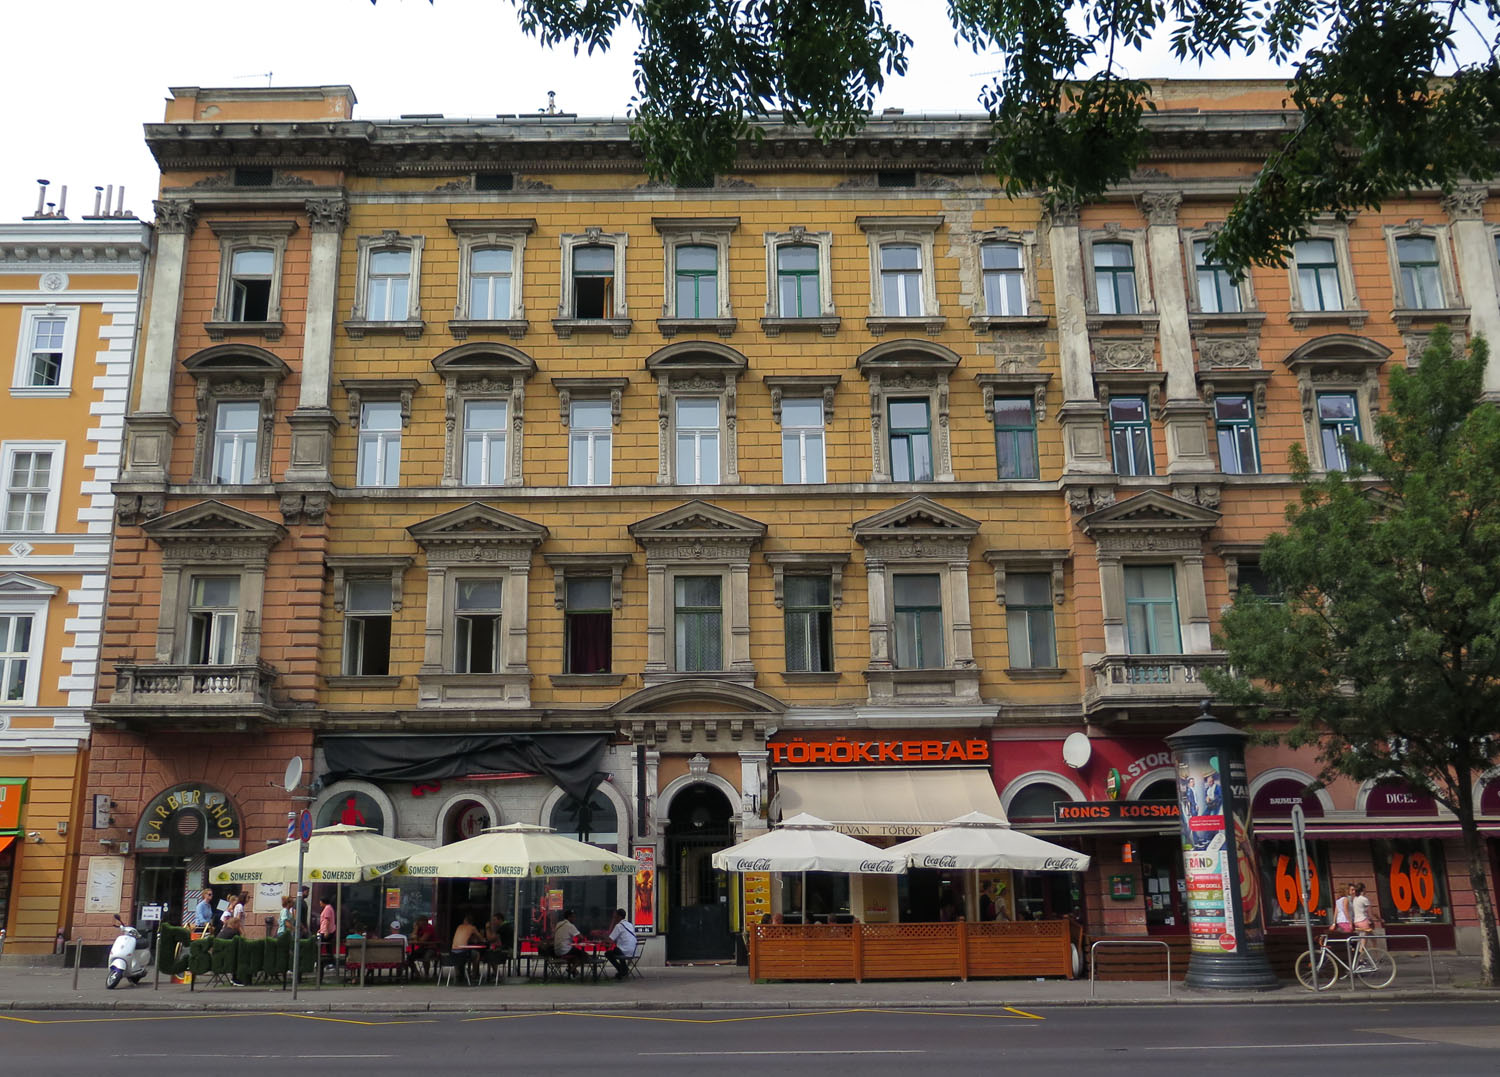 hungary-budapest-street-scenes-typical-architecture